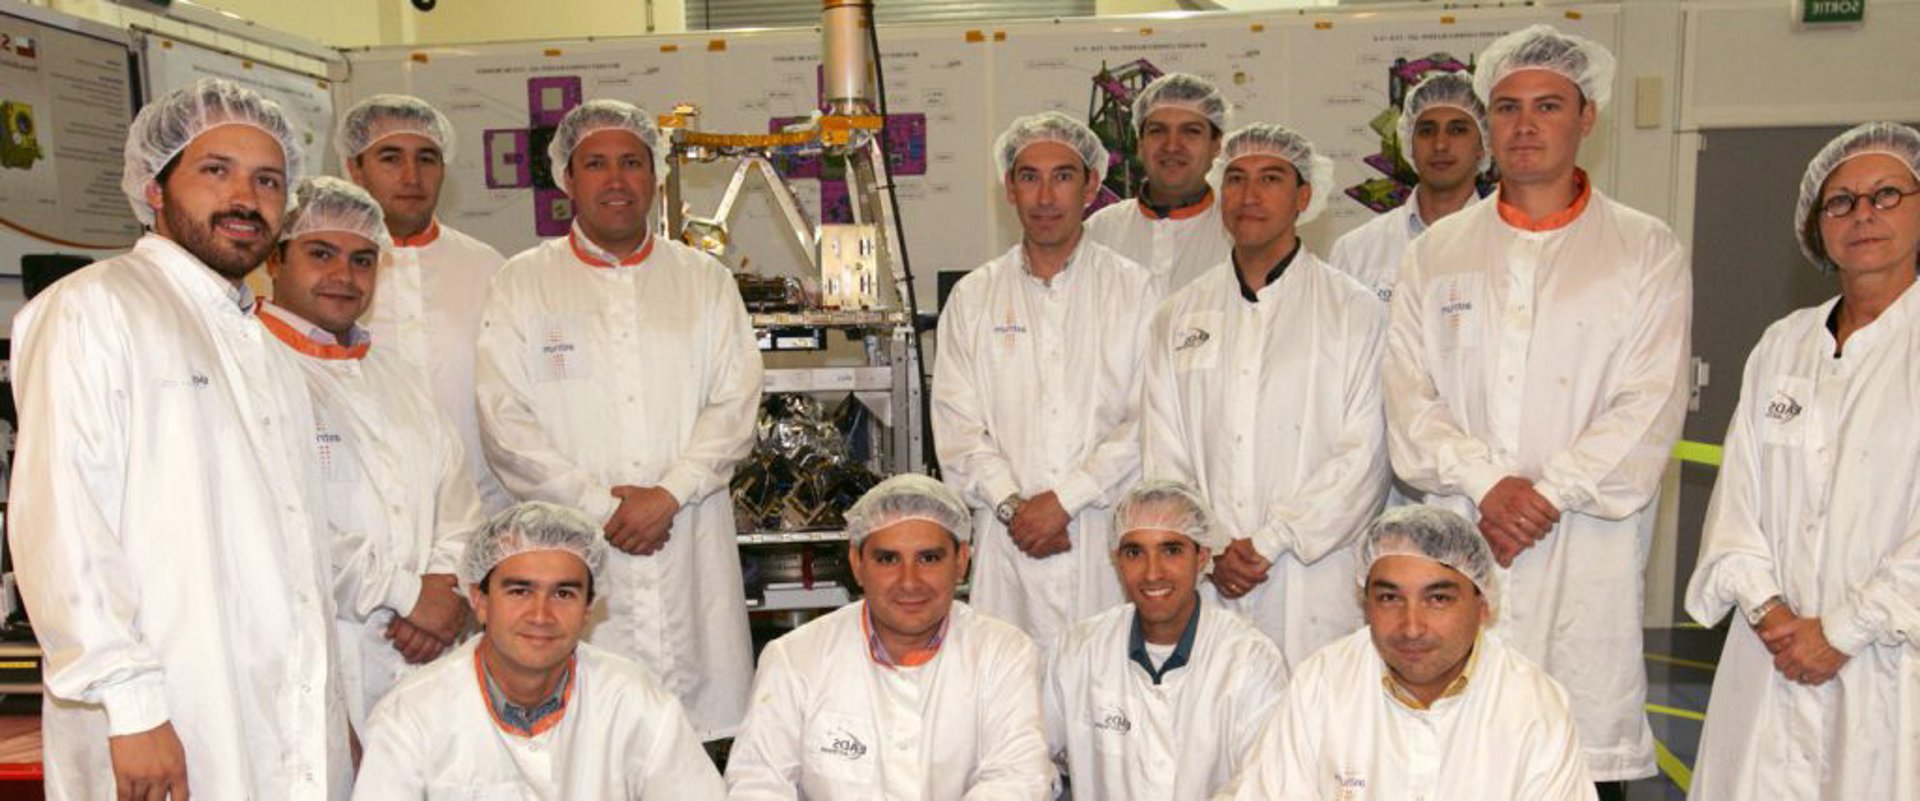 A group photo of engineers that worked on the SSOT - FASat CHARLIE satellite system.